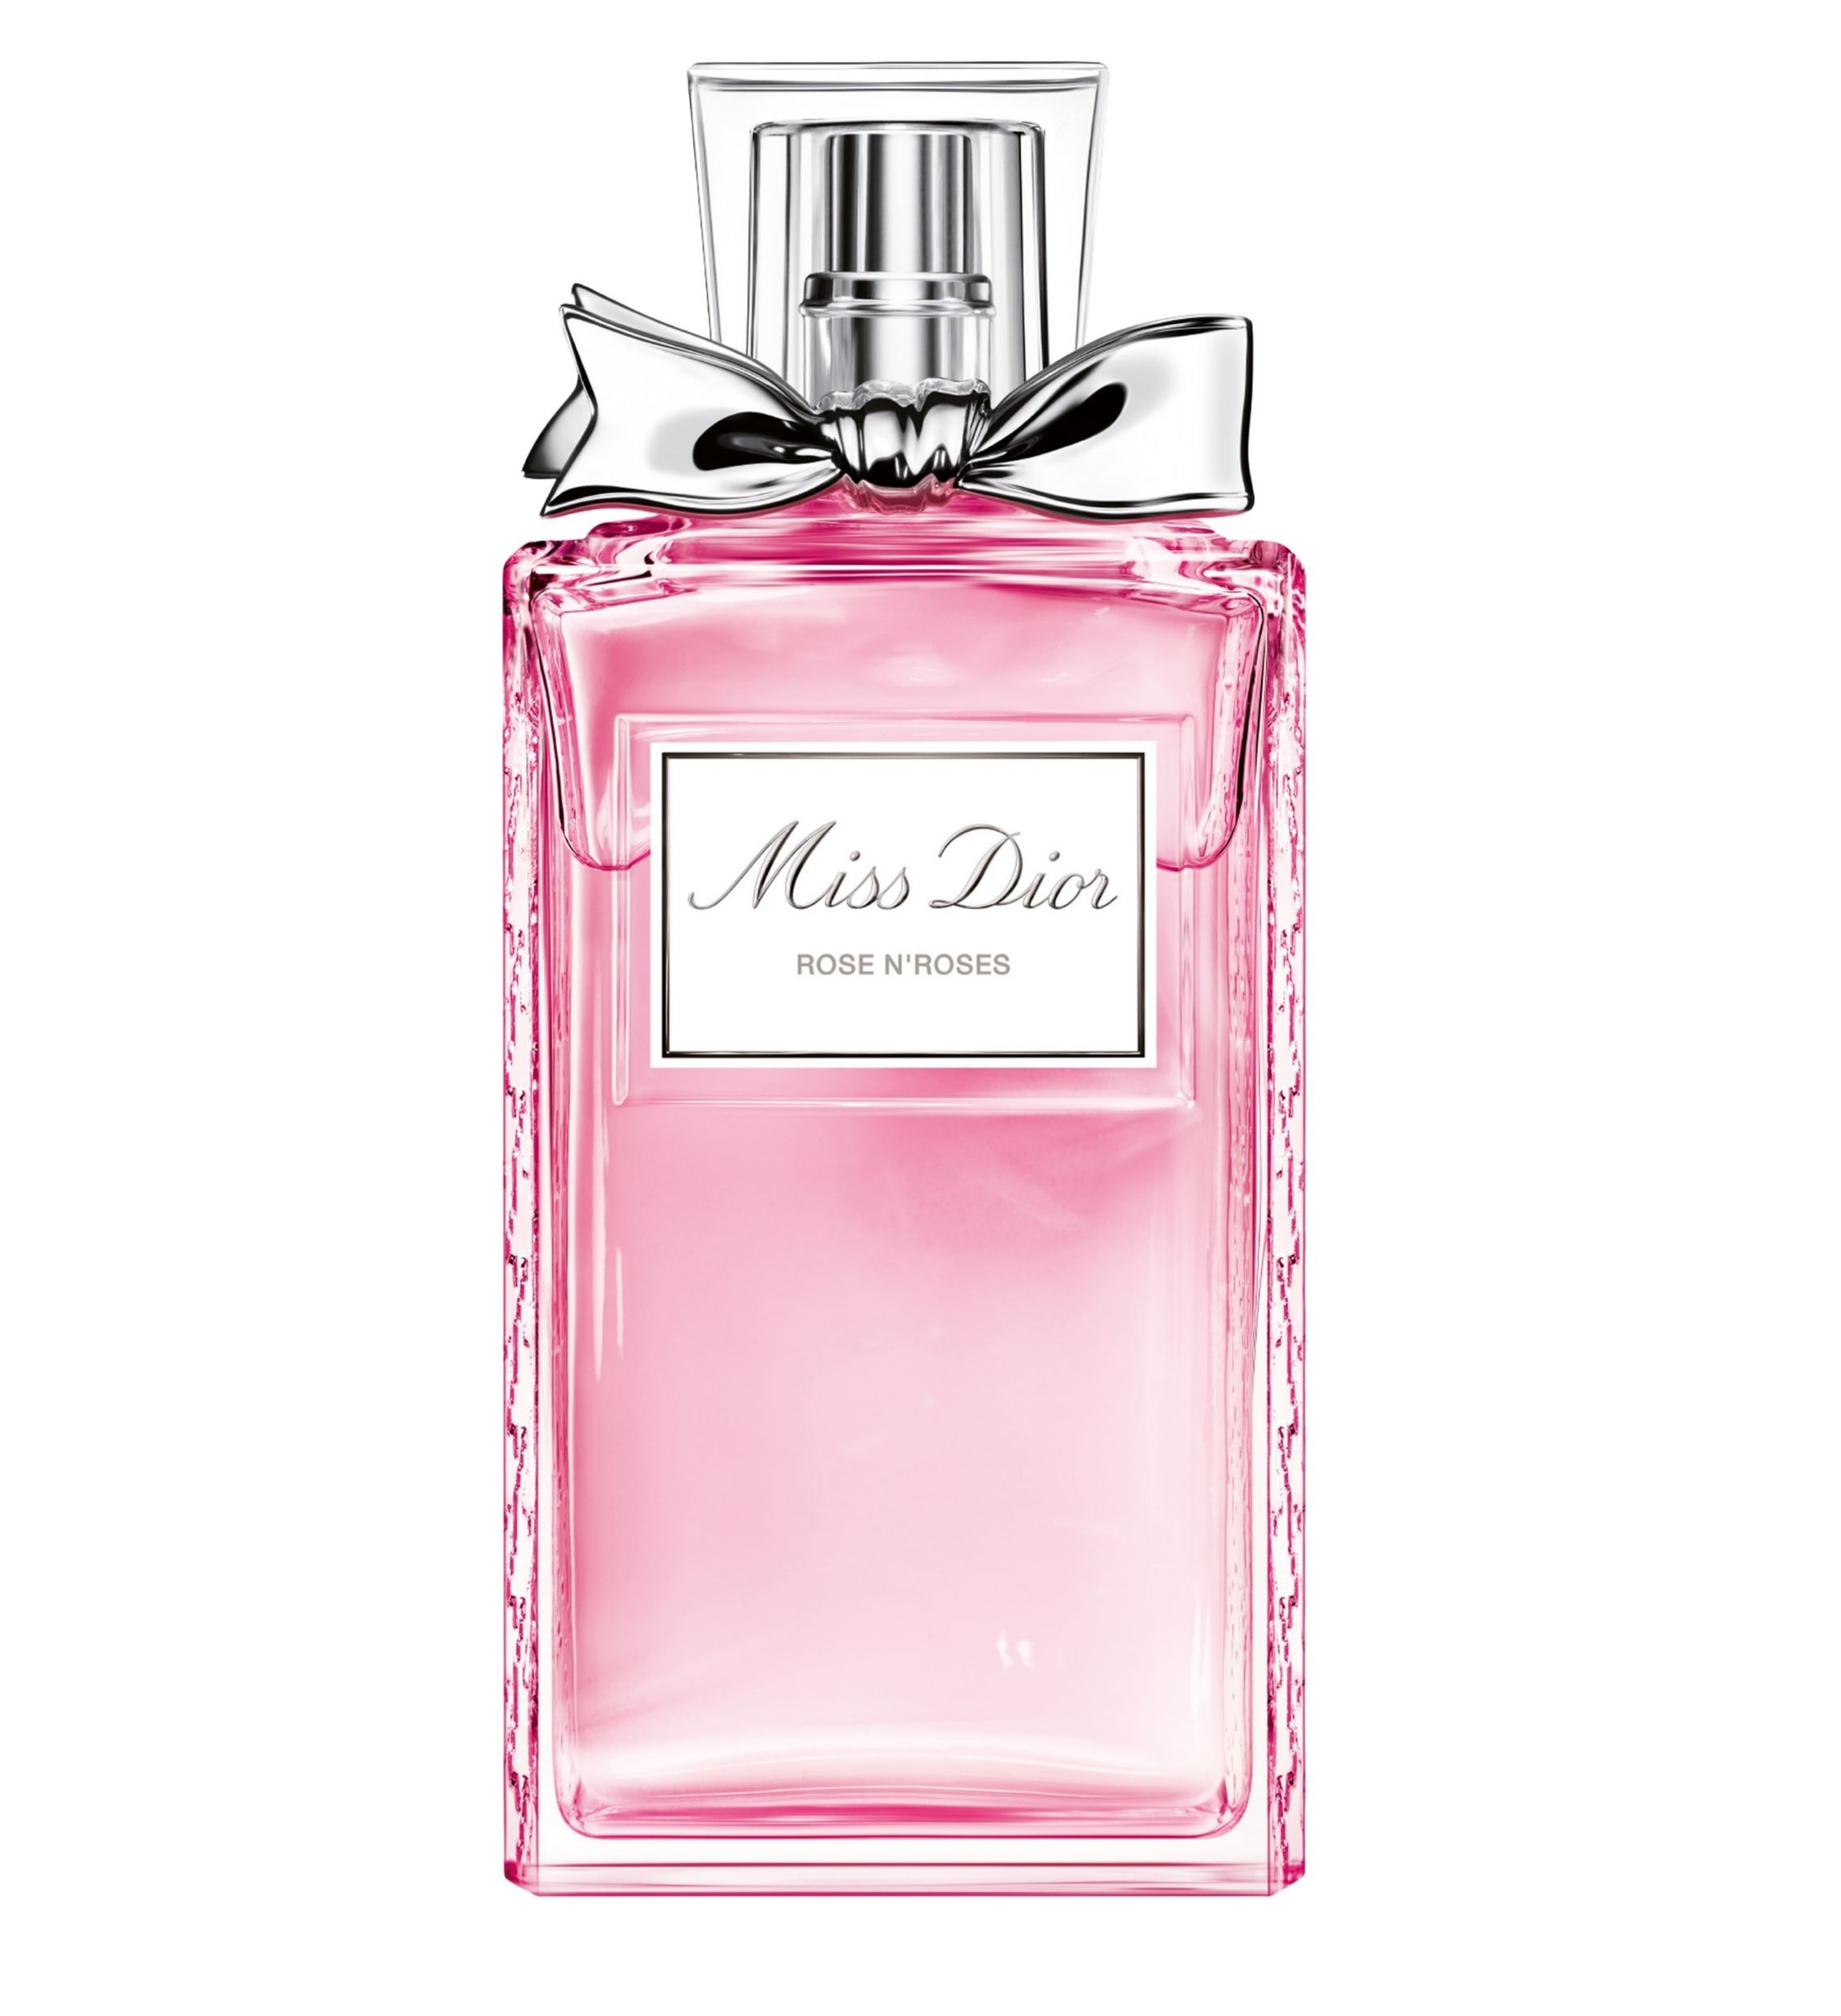 CHRISTIAN DIOR MISS DIOR ROSE N ROSES ПАРФЮМ ЗА ЖЕНИ